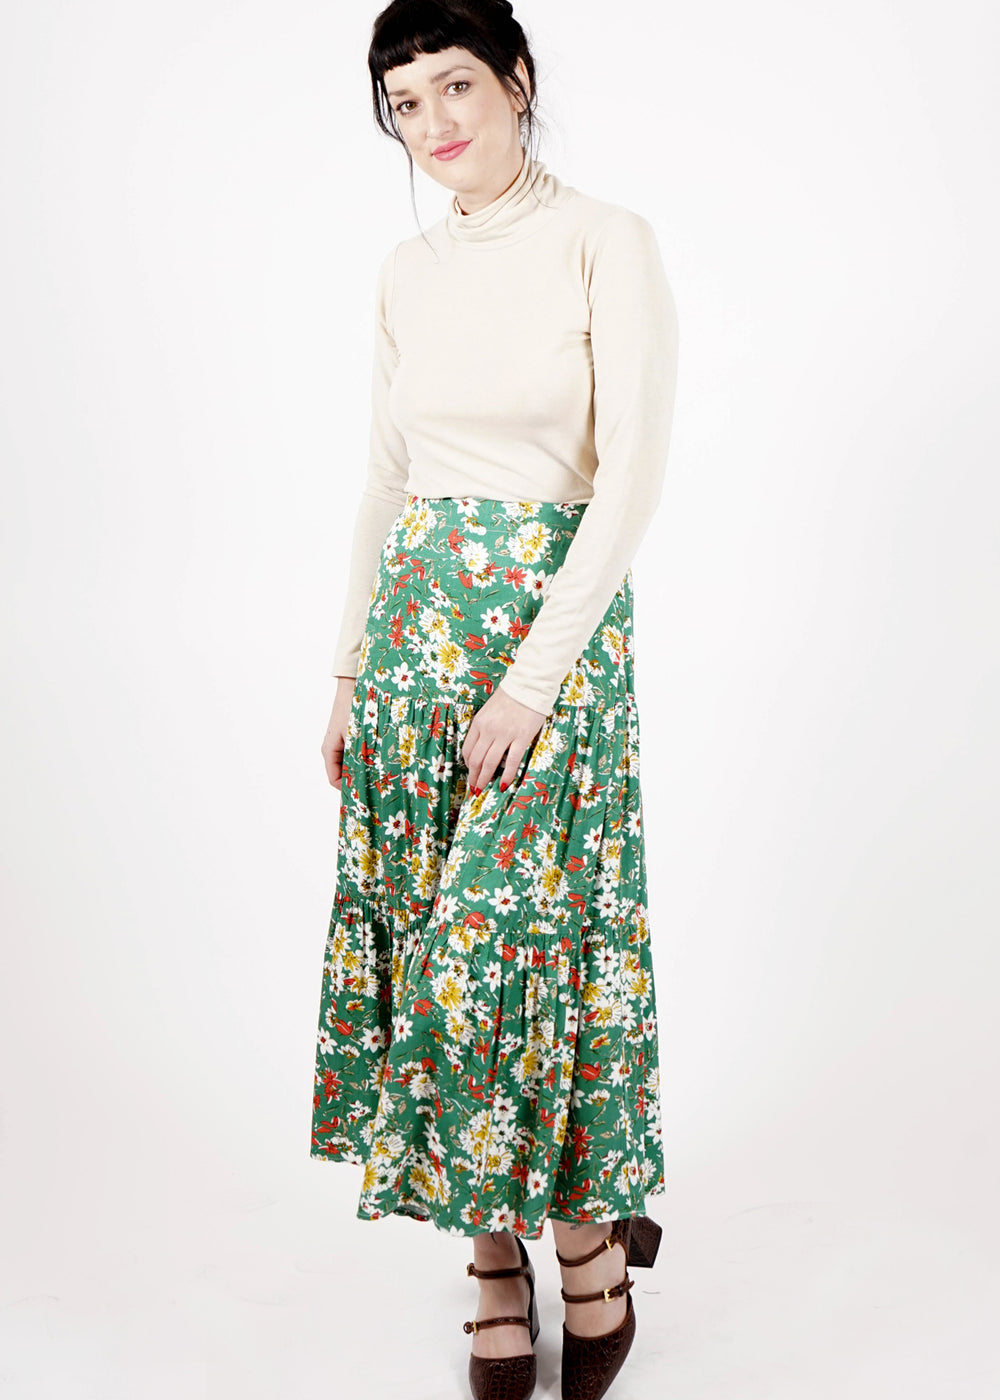 Tiered Skirt - Green Floral